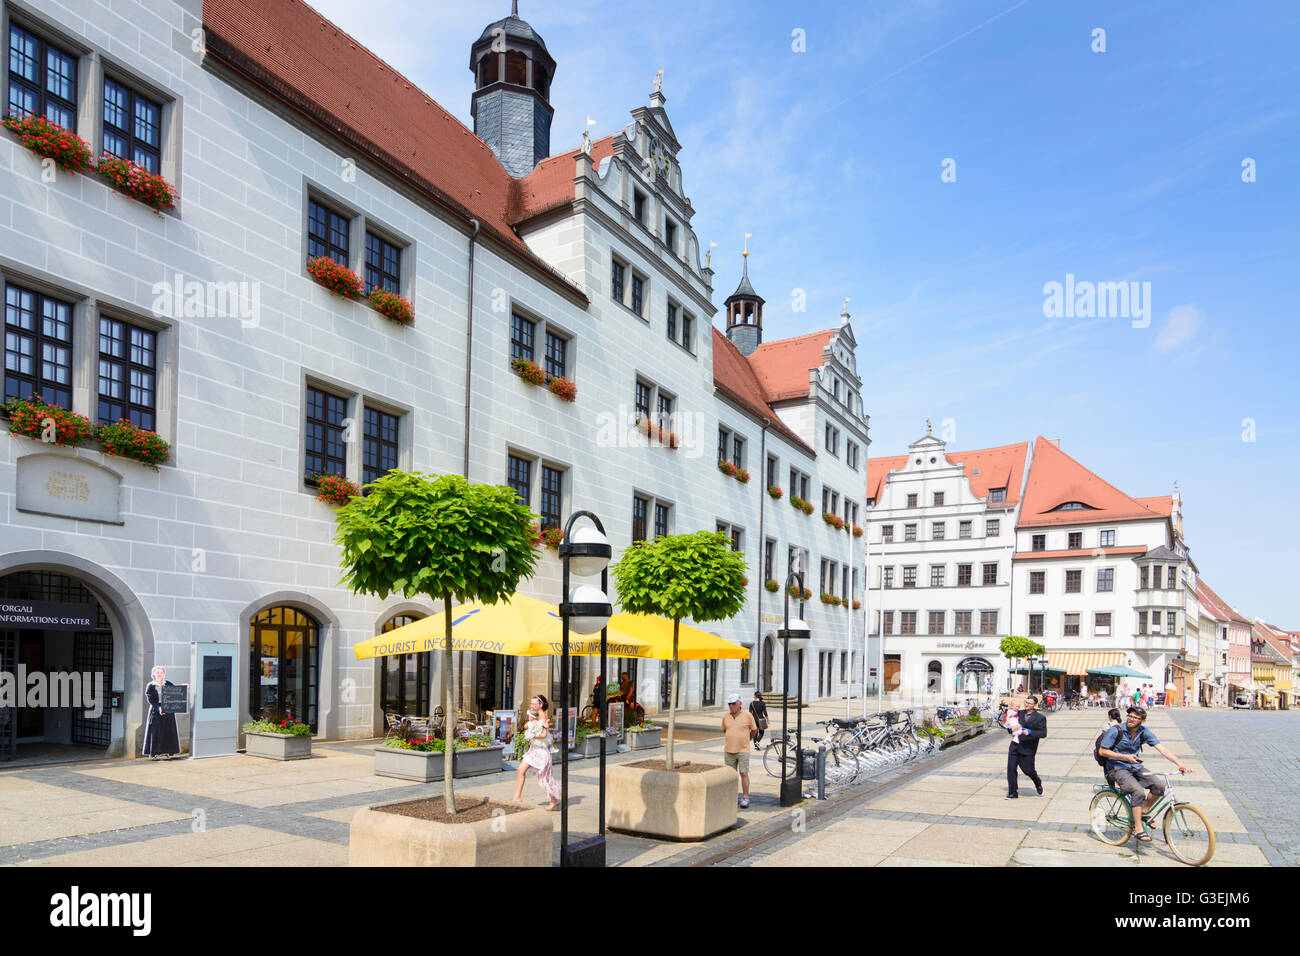 town hall, Germany, Sachsen, Saxony, , Torgau Stock Photo